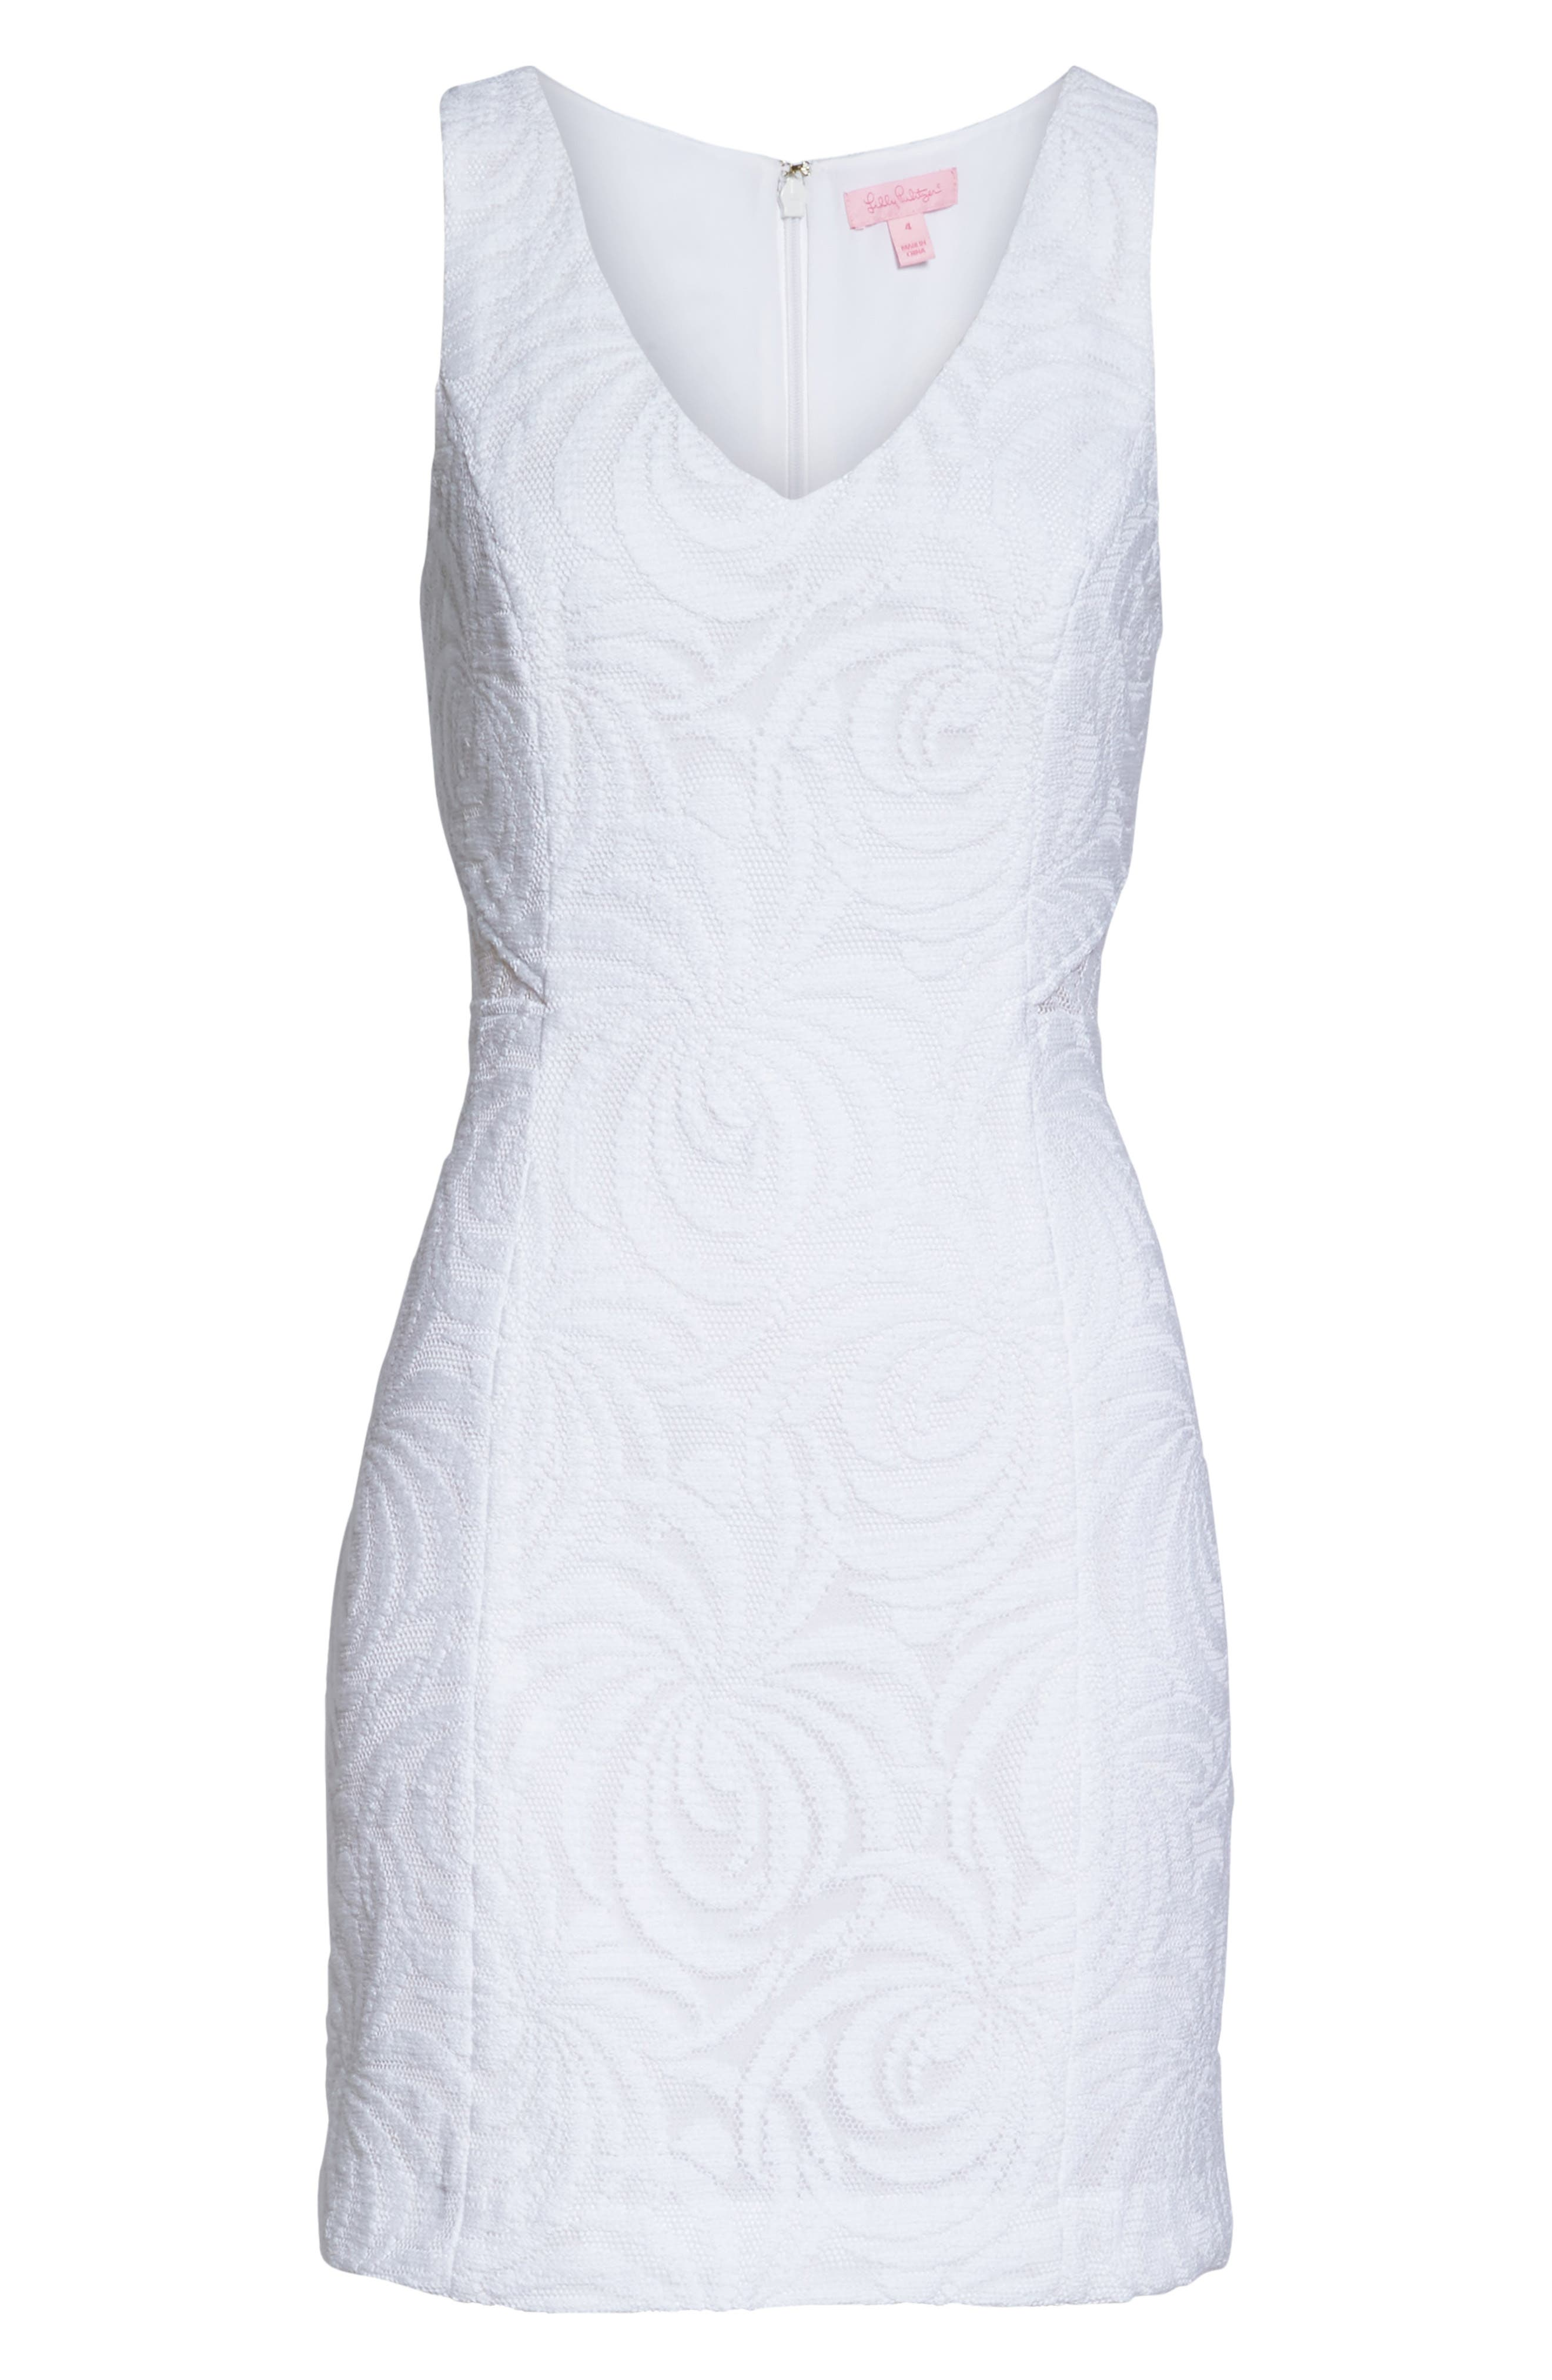 Blakely Lace Shift Dress,                             Alternate thumbnail 6, color,                             Resort White Sea Swirling Lace